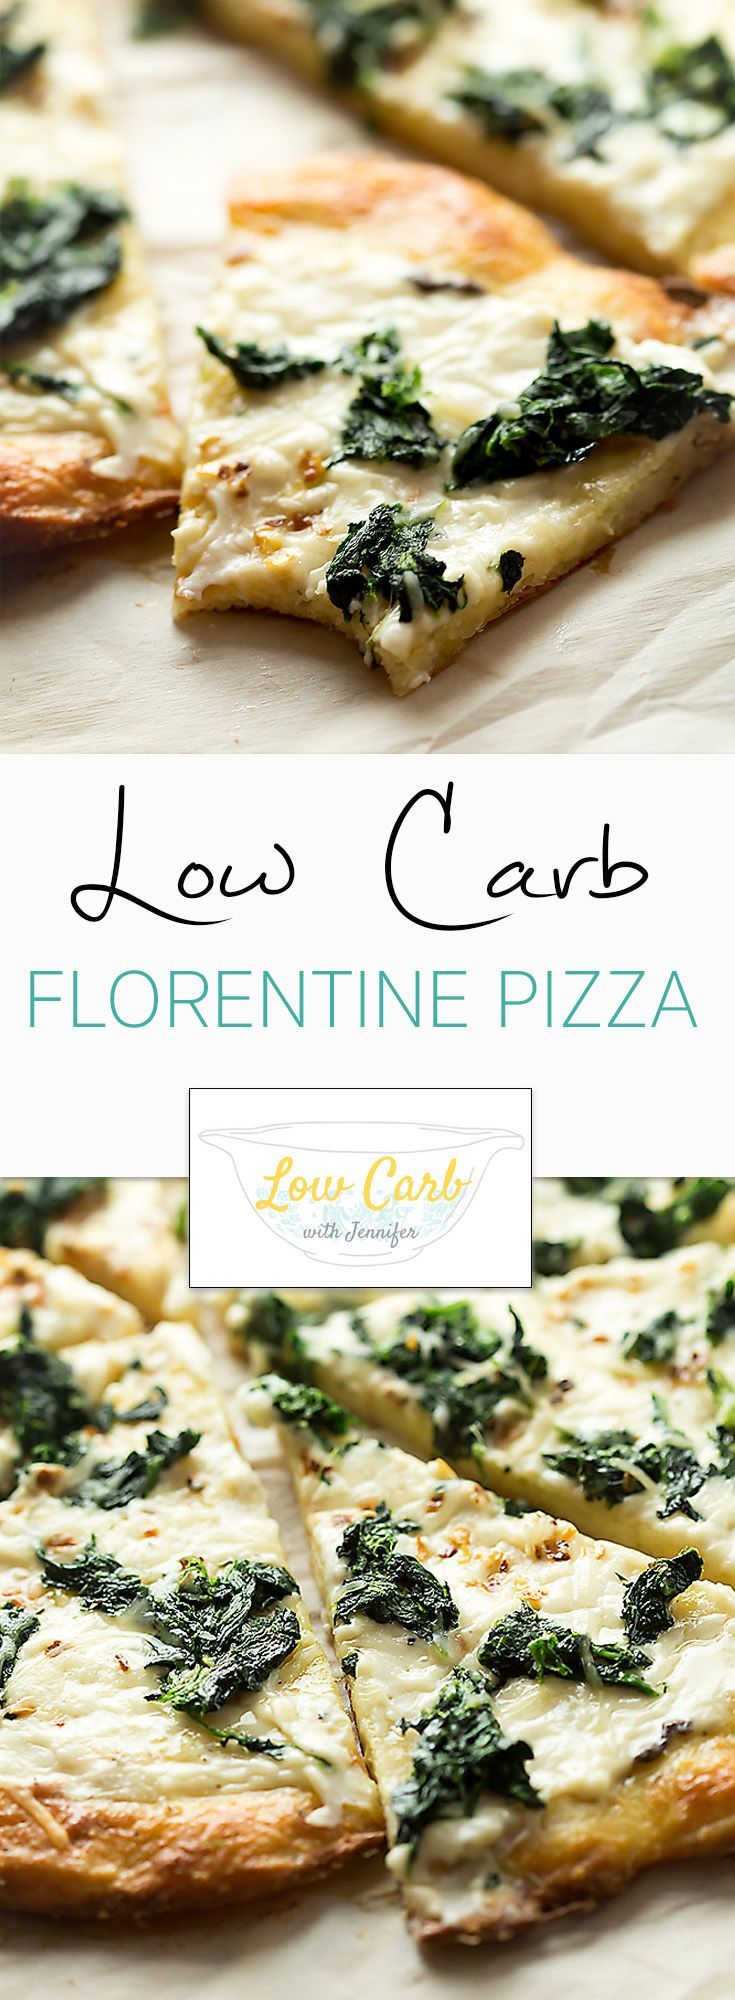 Low Carb Florentine Pizza. This should be the new standard for all pizzas! The crust is amazing and doesn't require a fork!